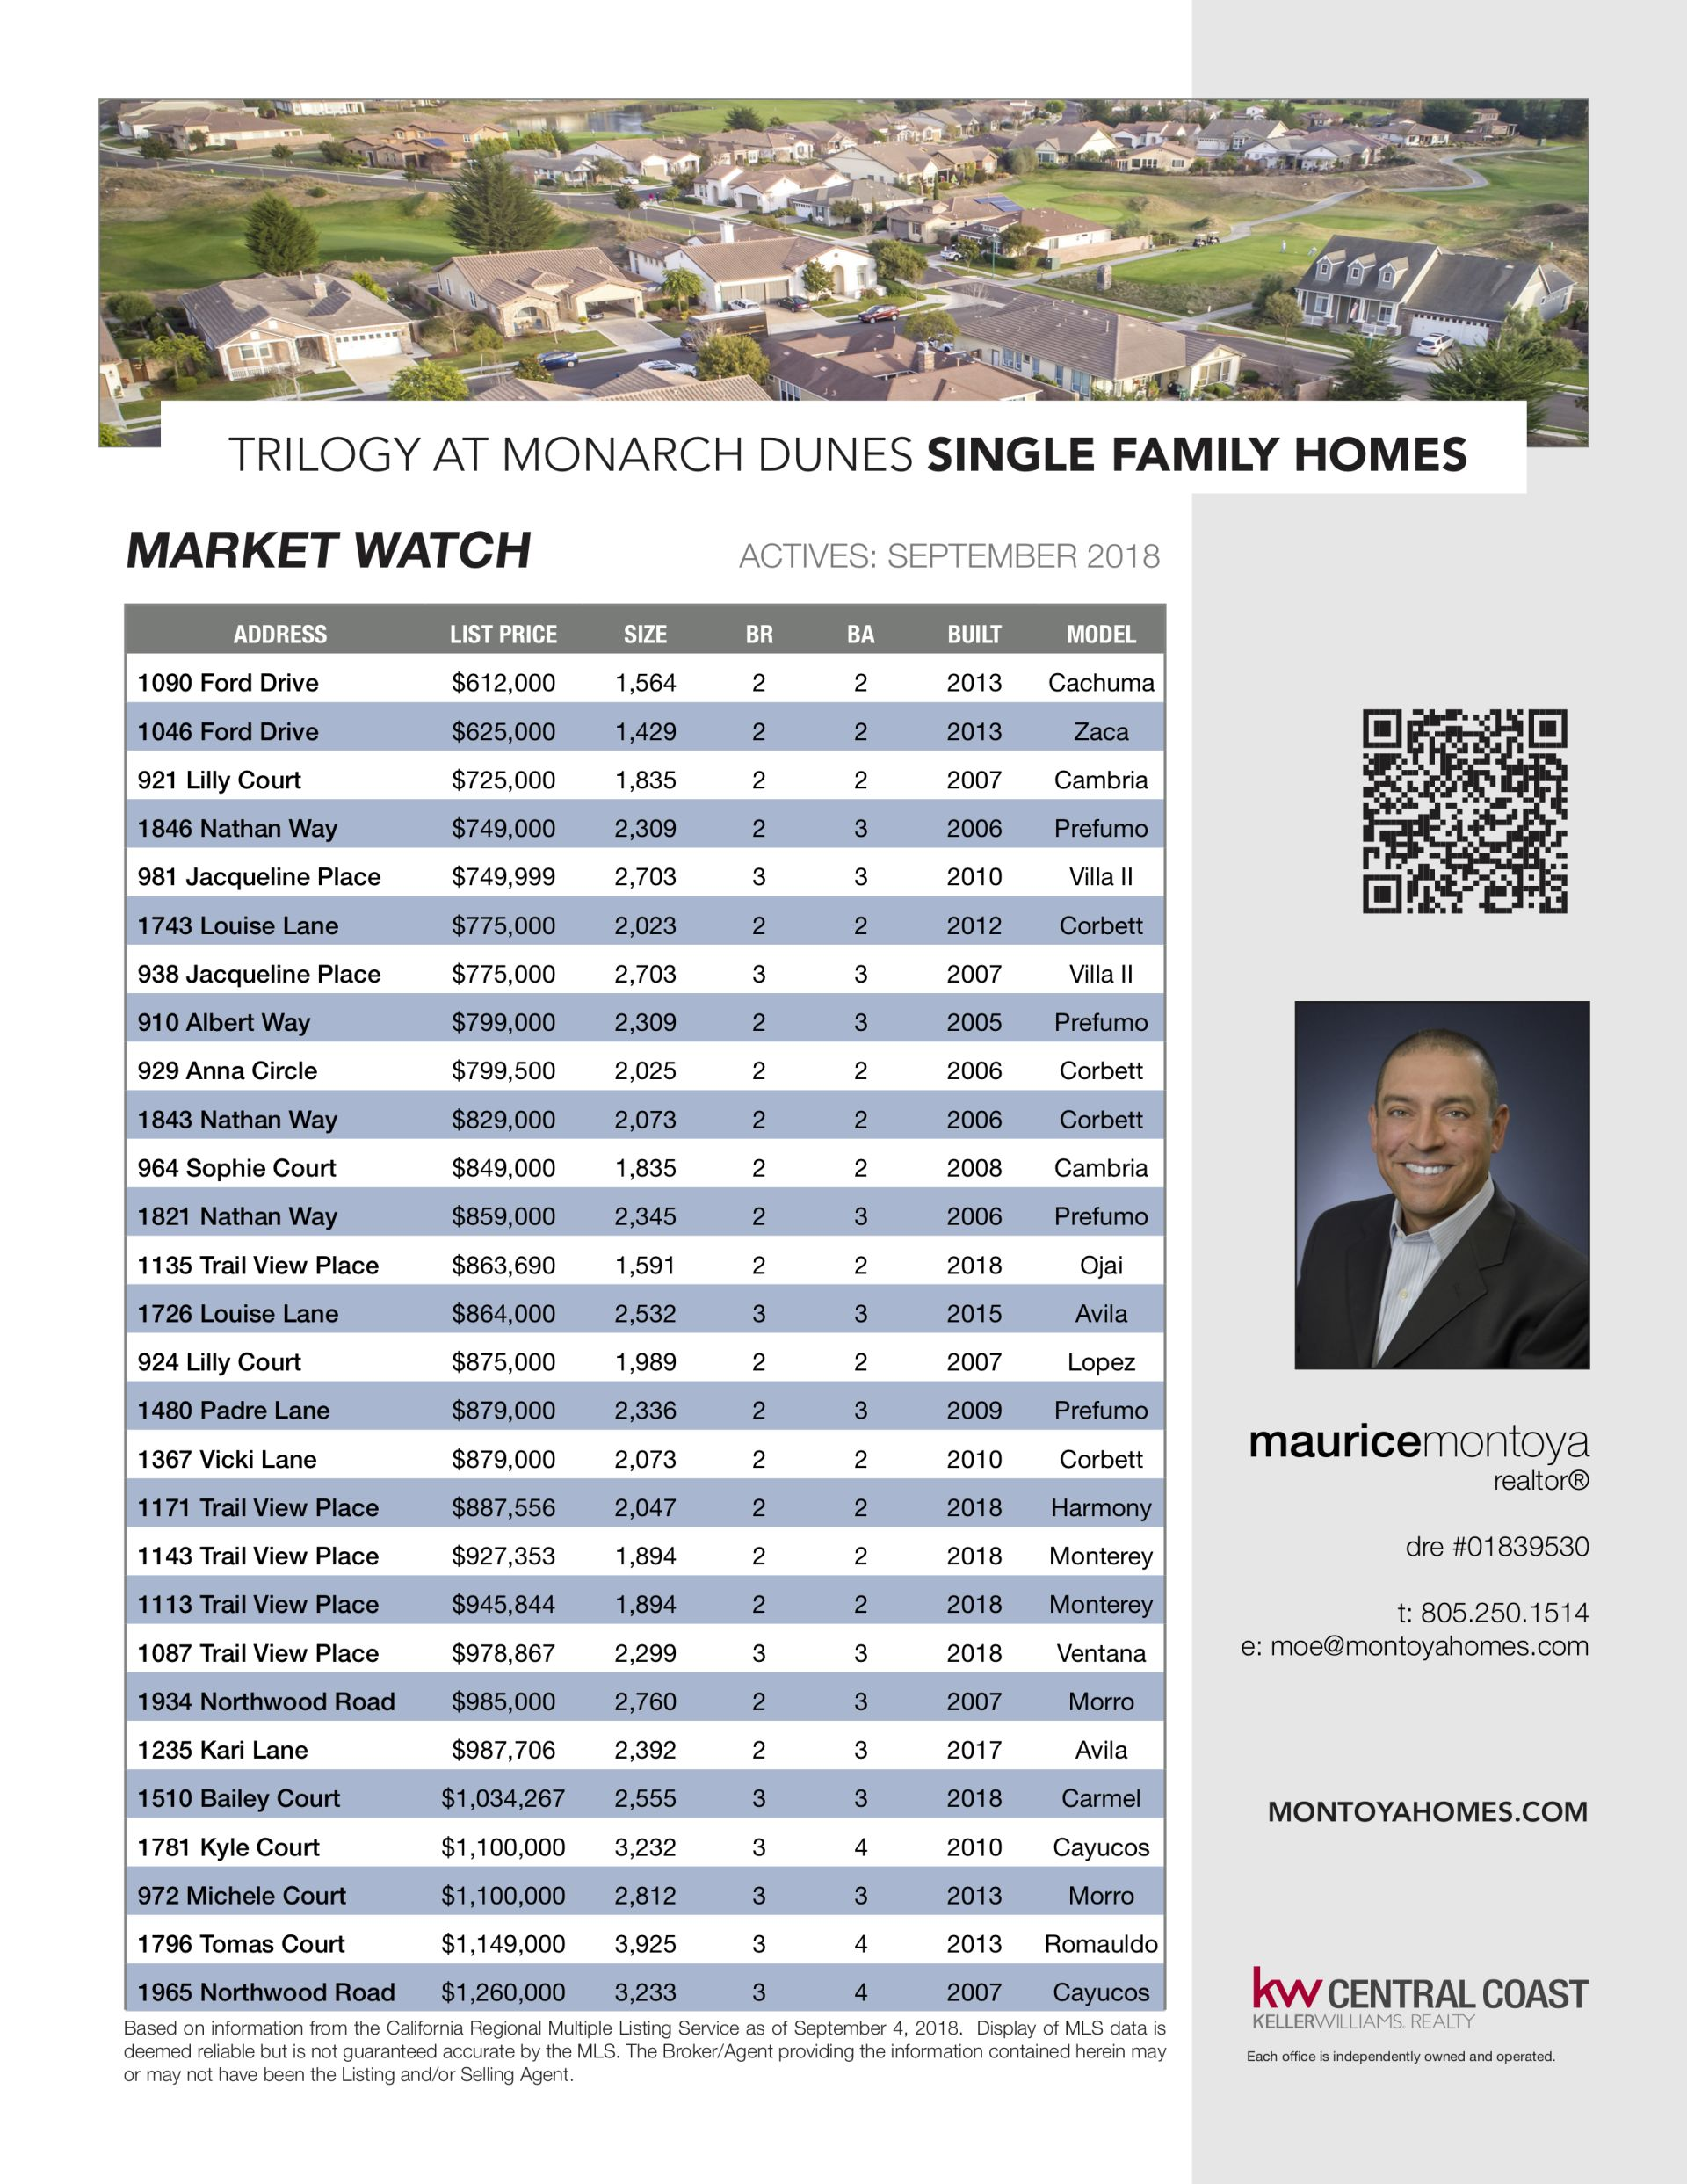 Trilogy at Monarch Dunes: Market Watch – September 2018